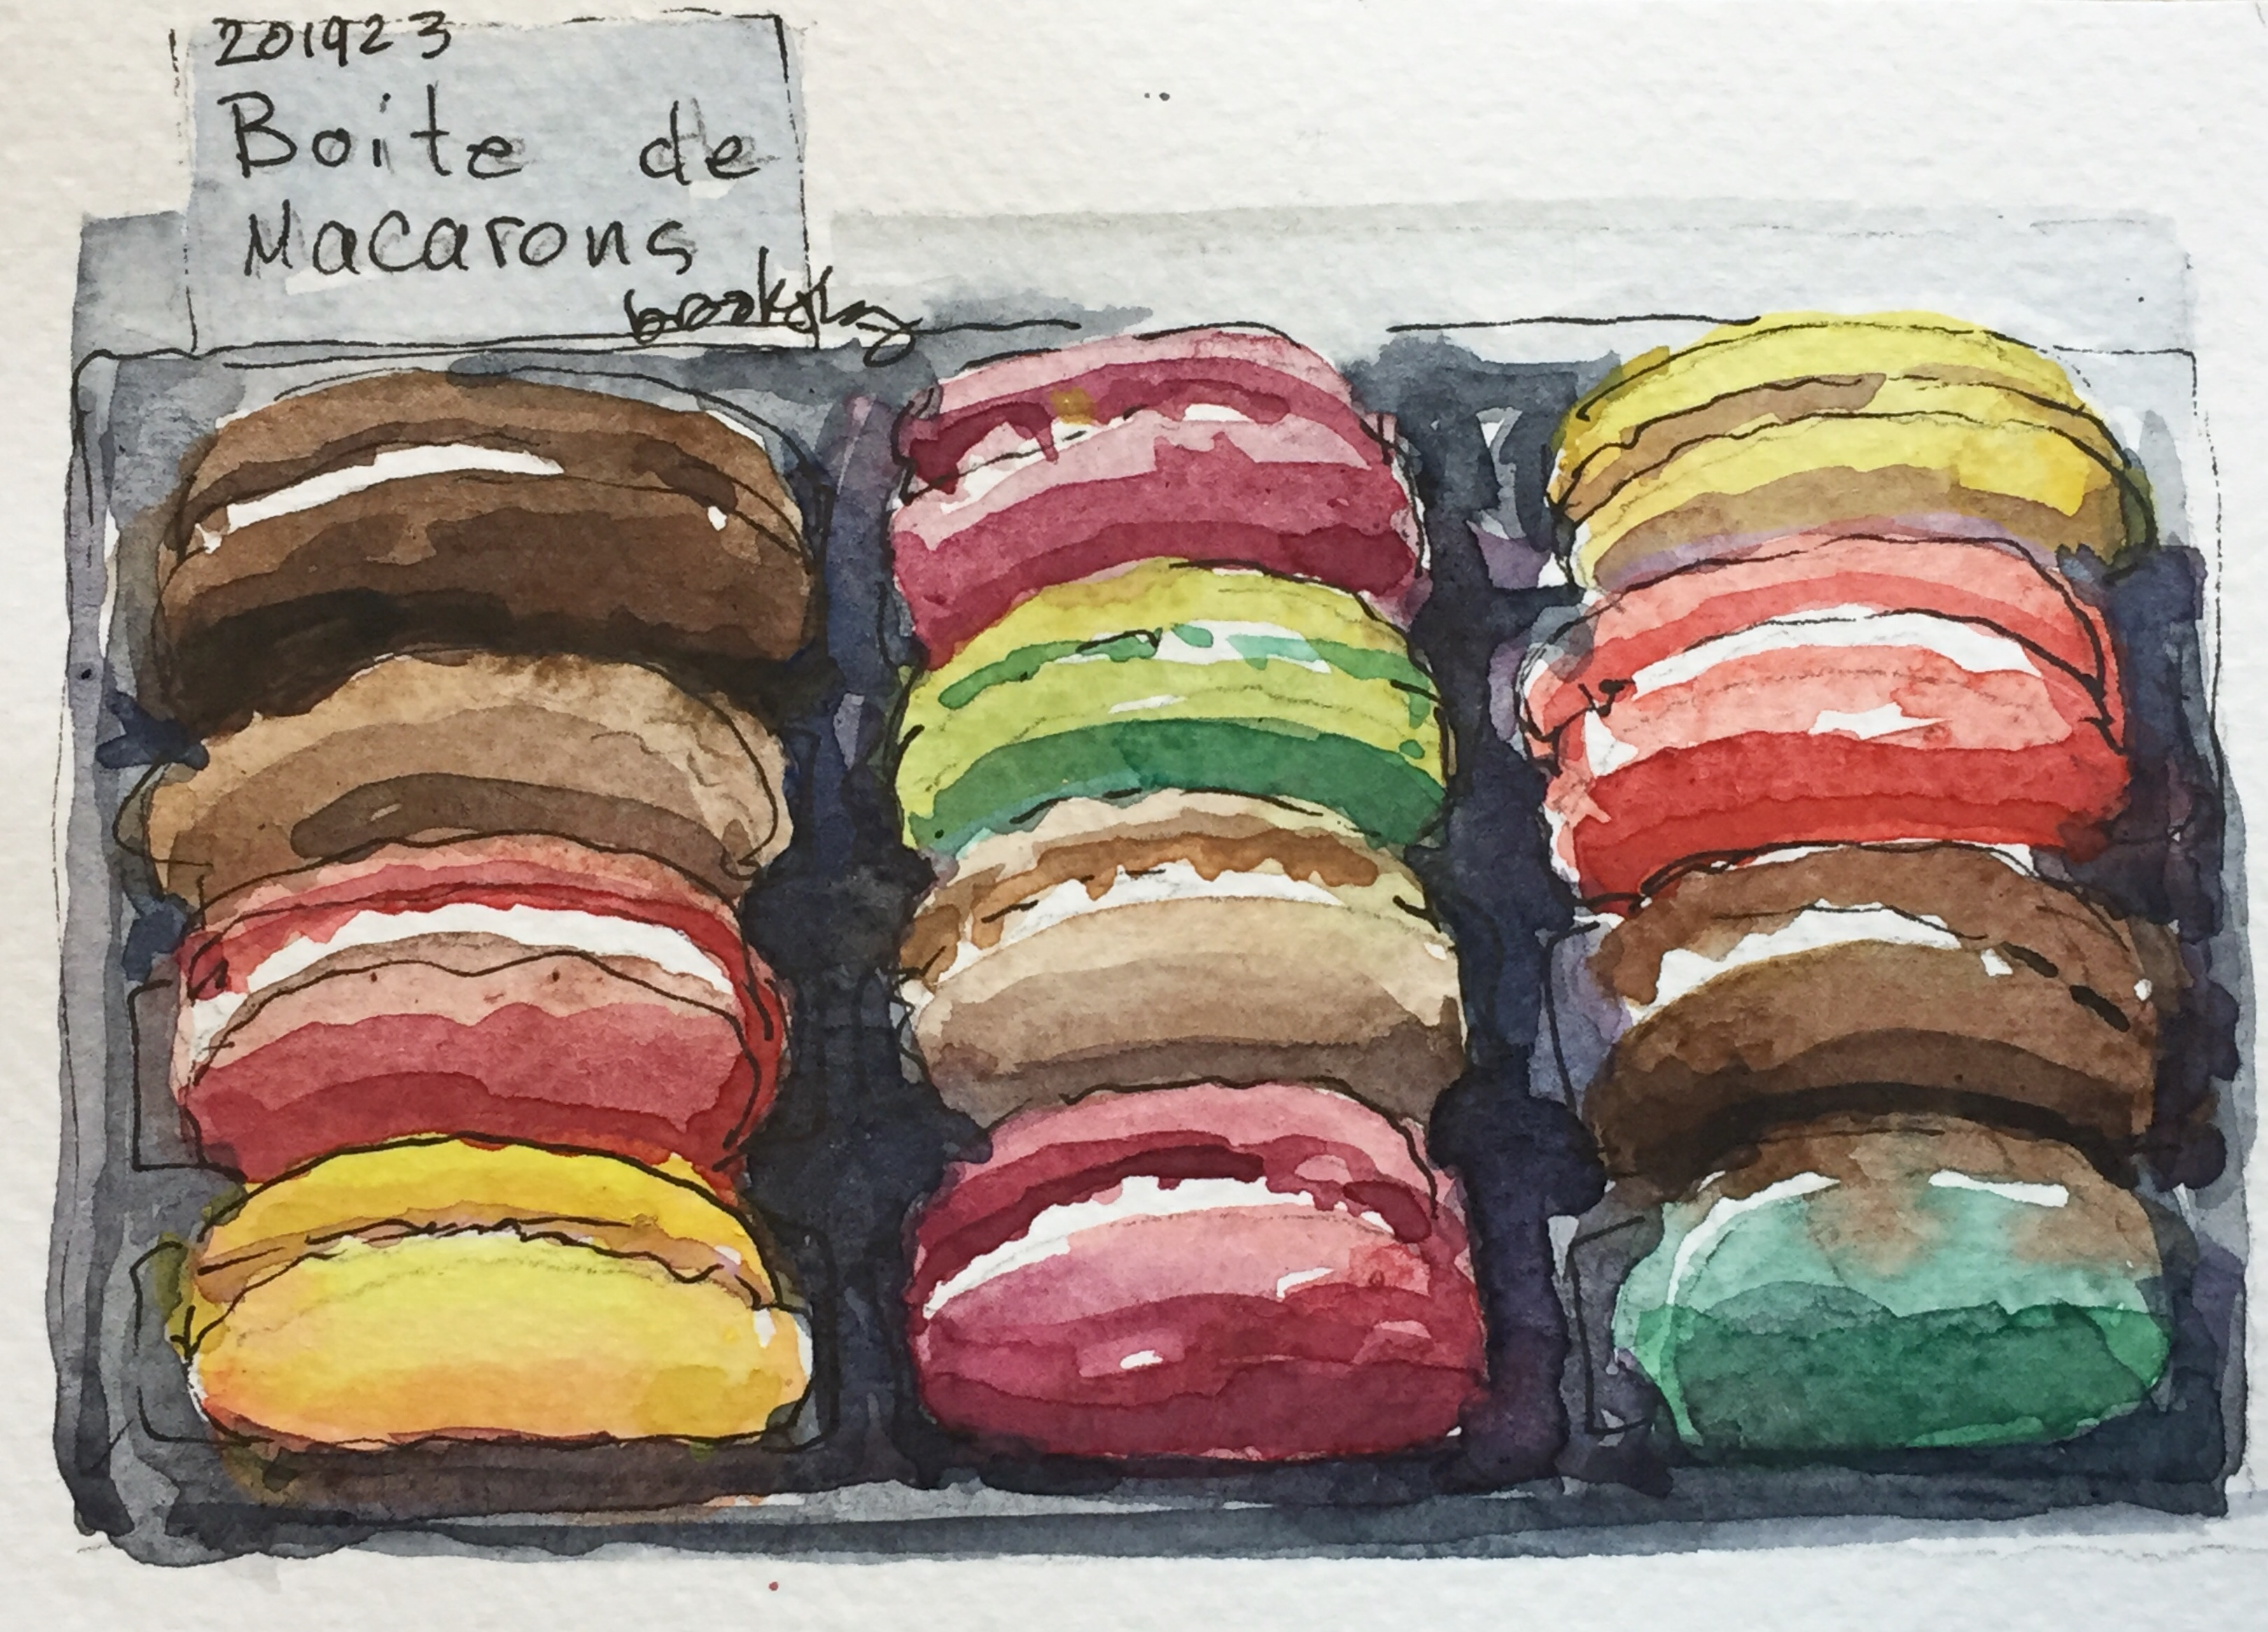 an illustration of macarons